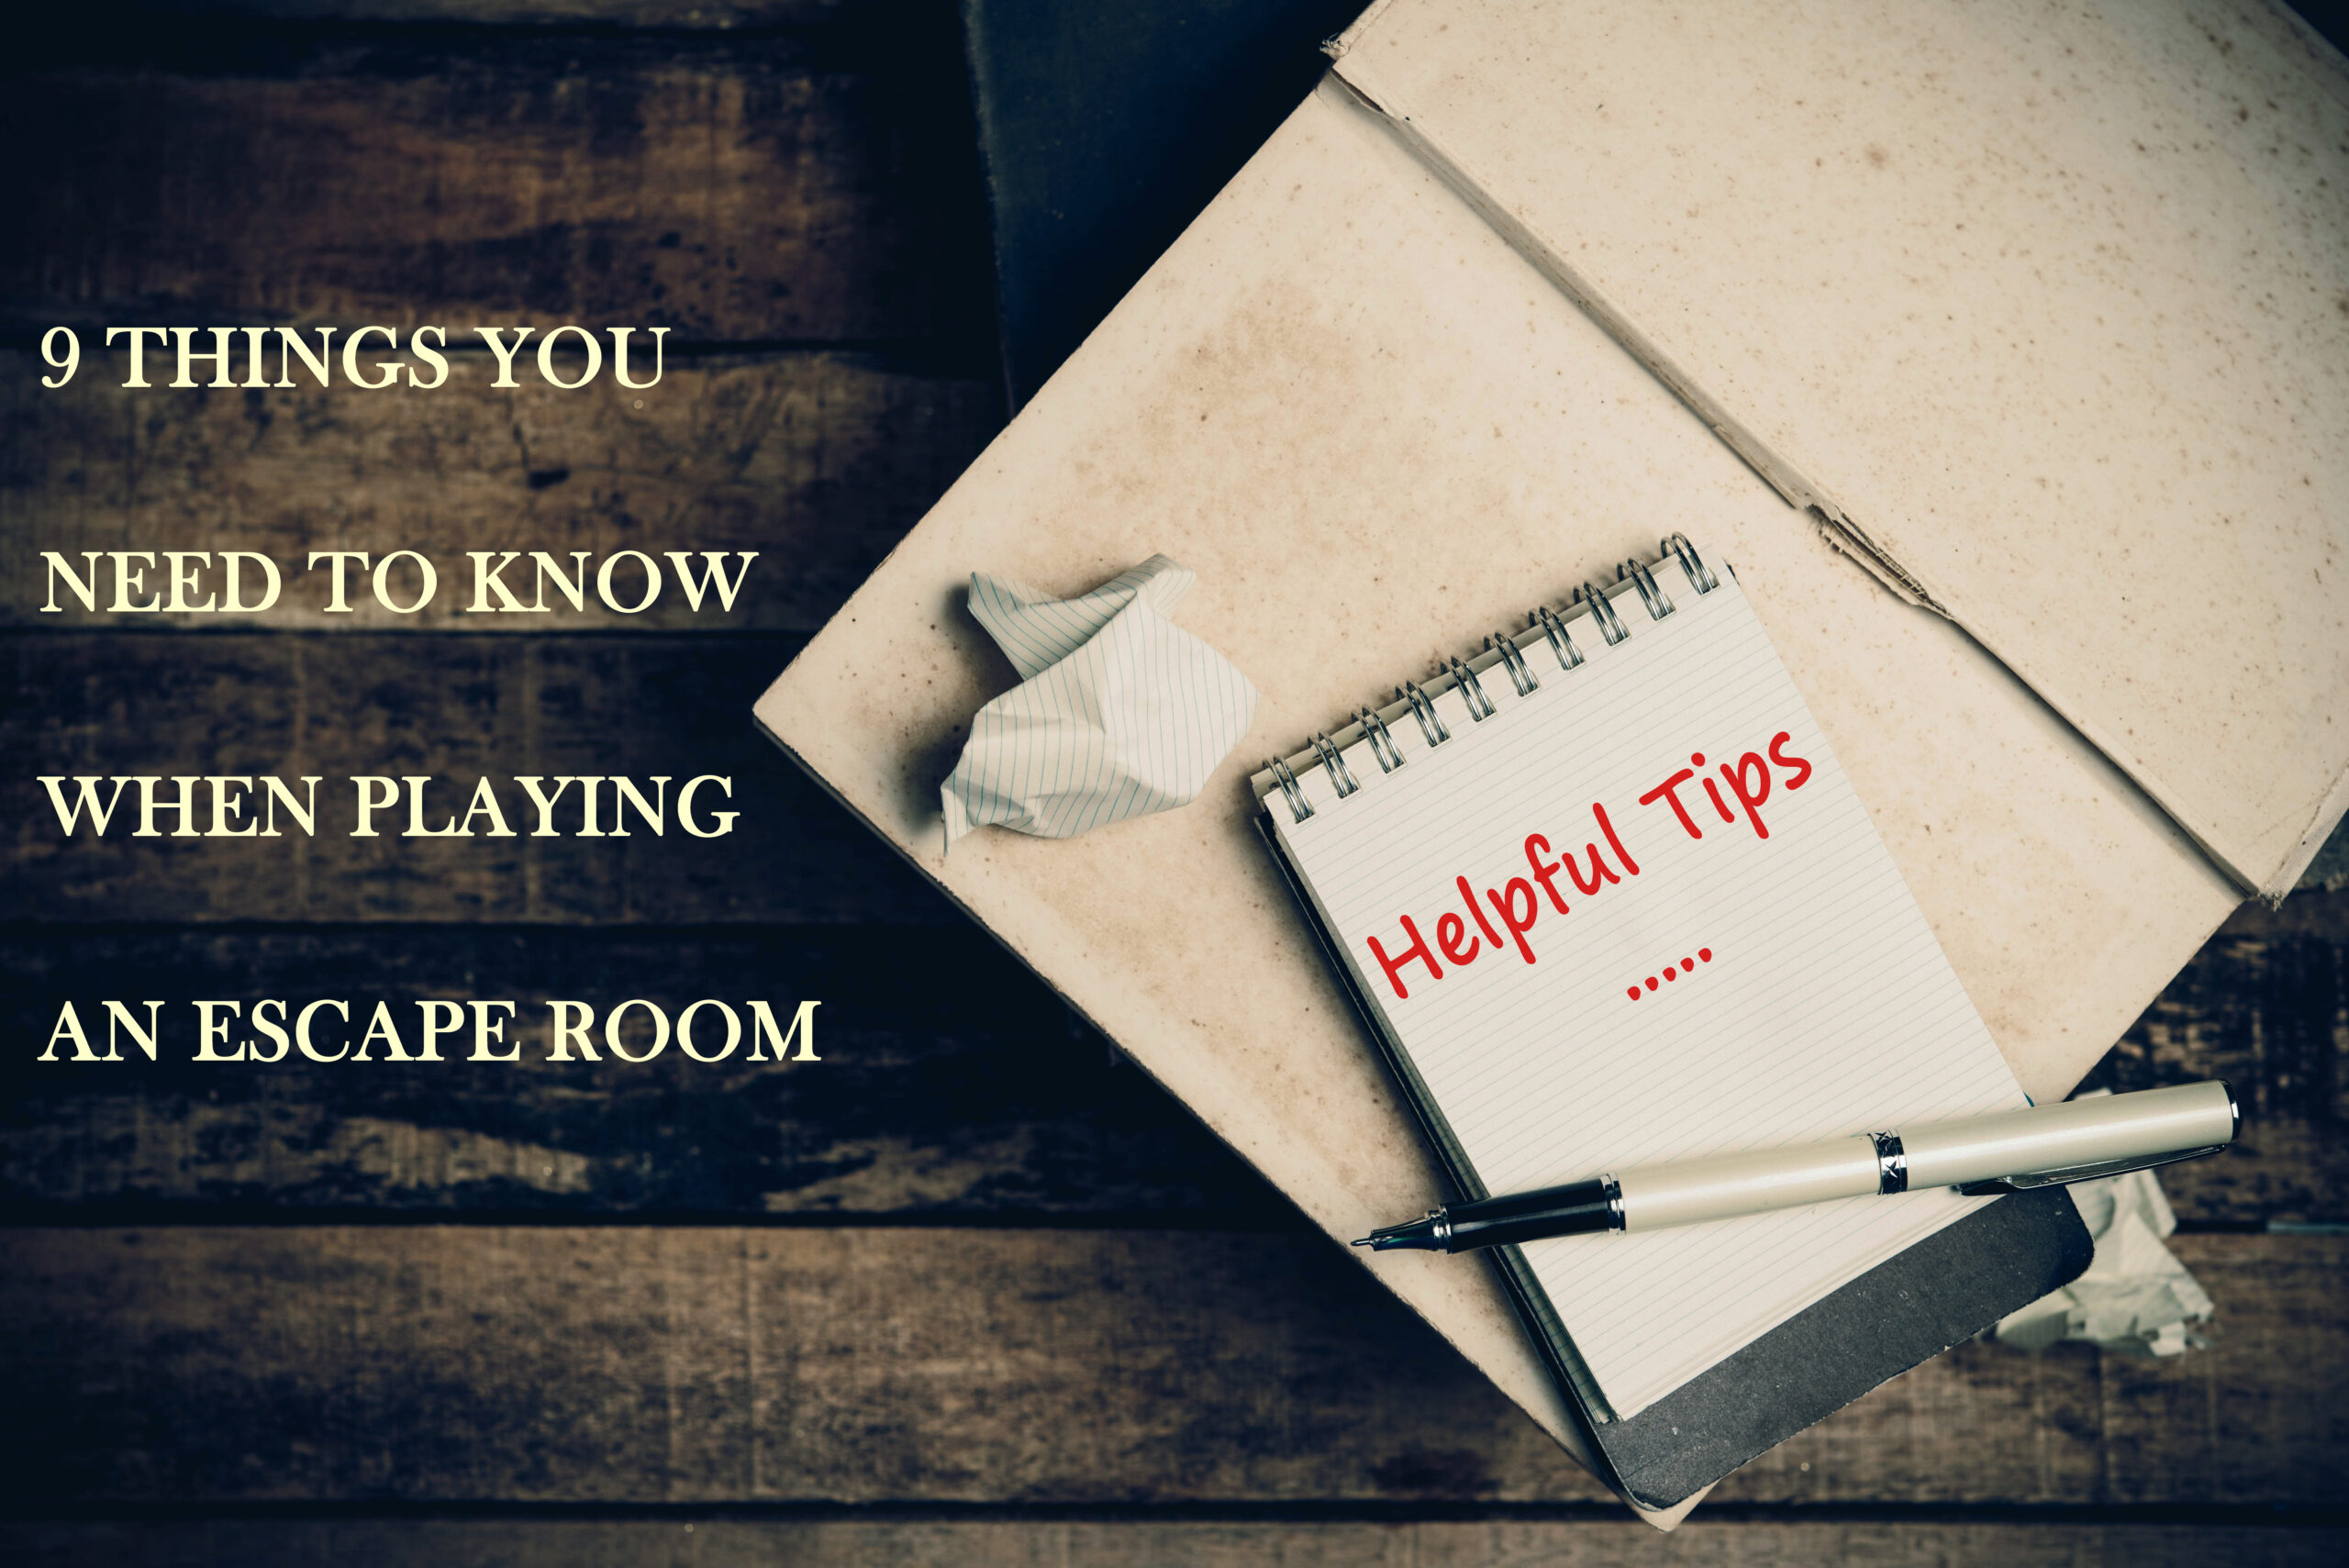 9 Escape Room Tips From an Escape Room Owner